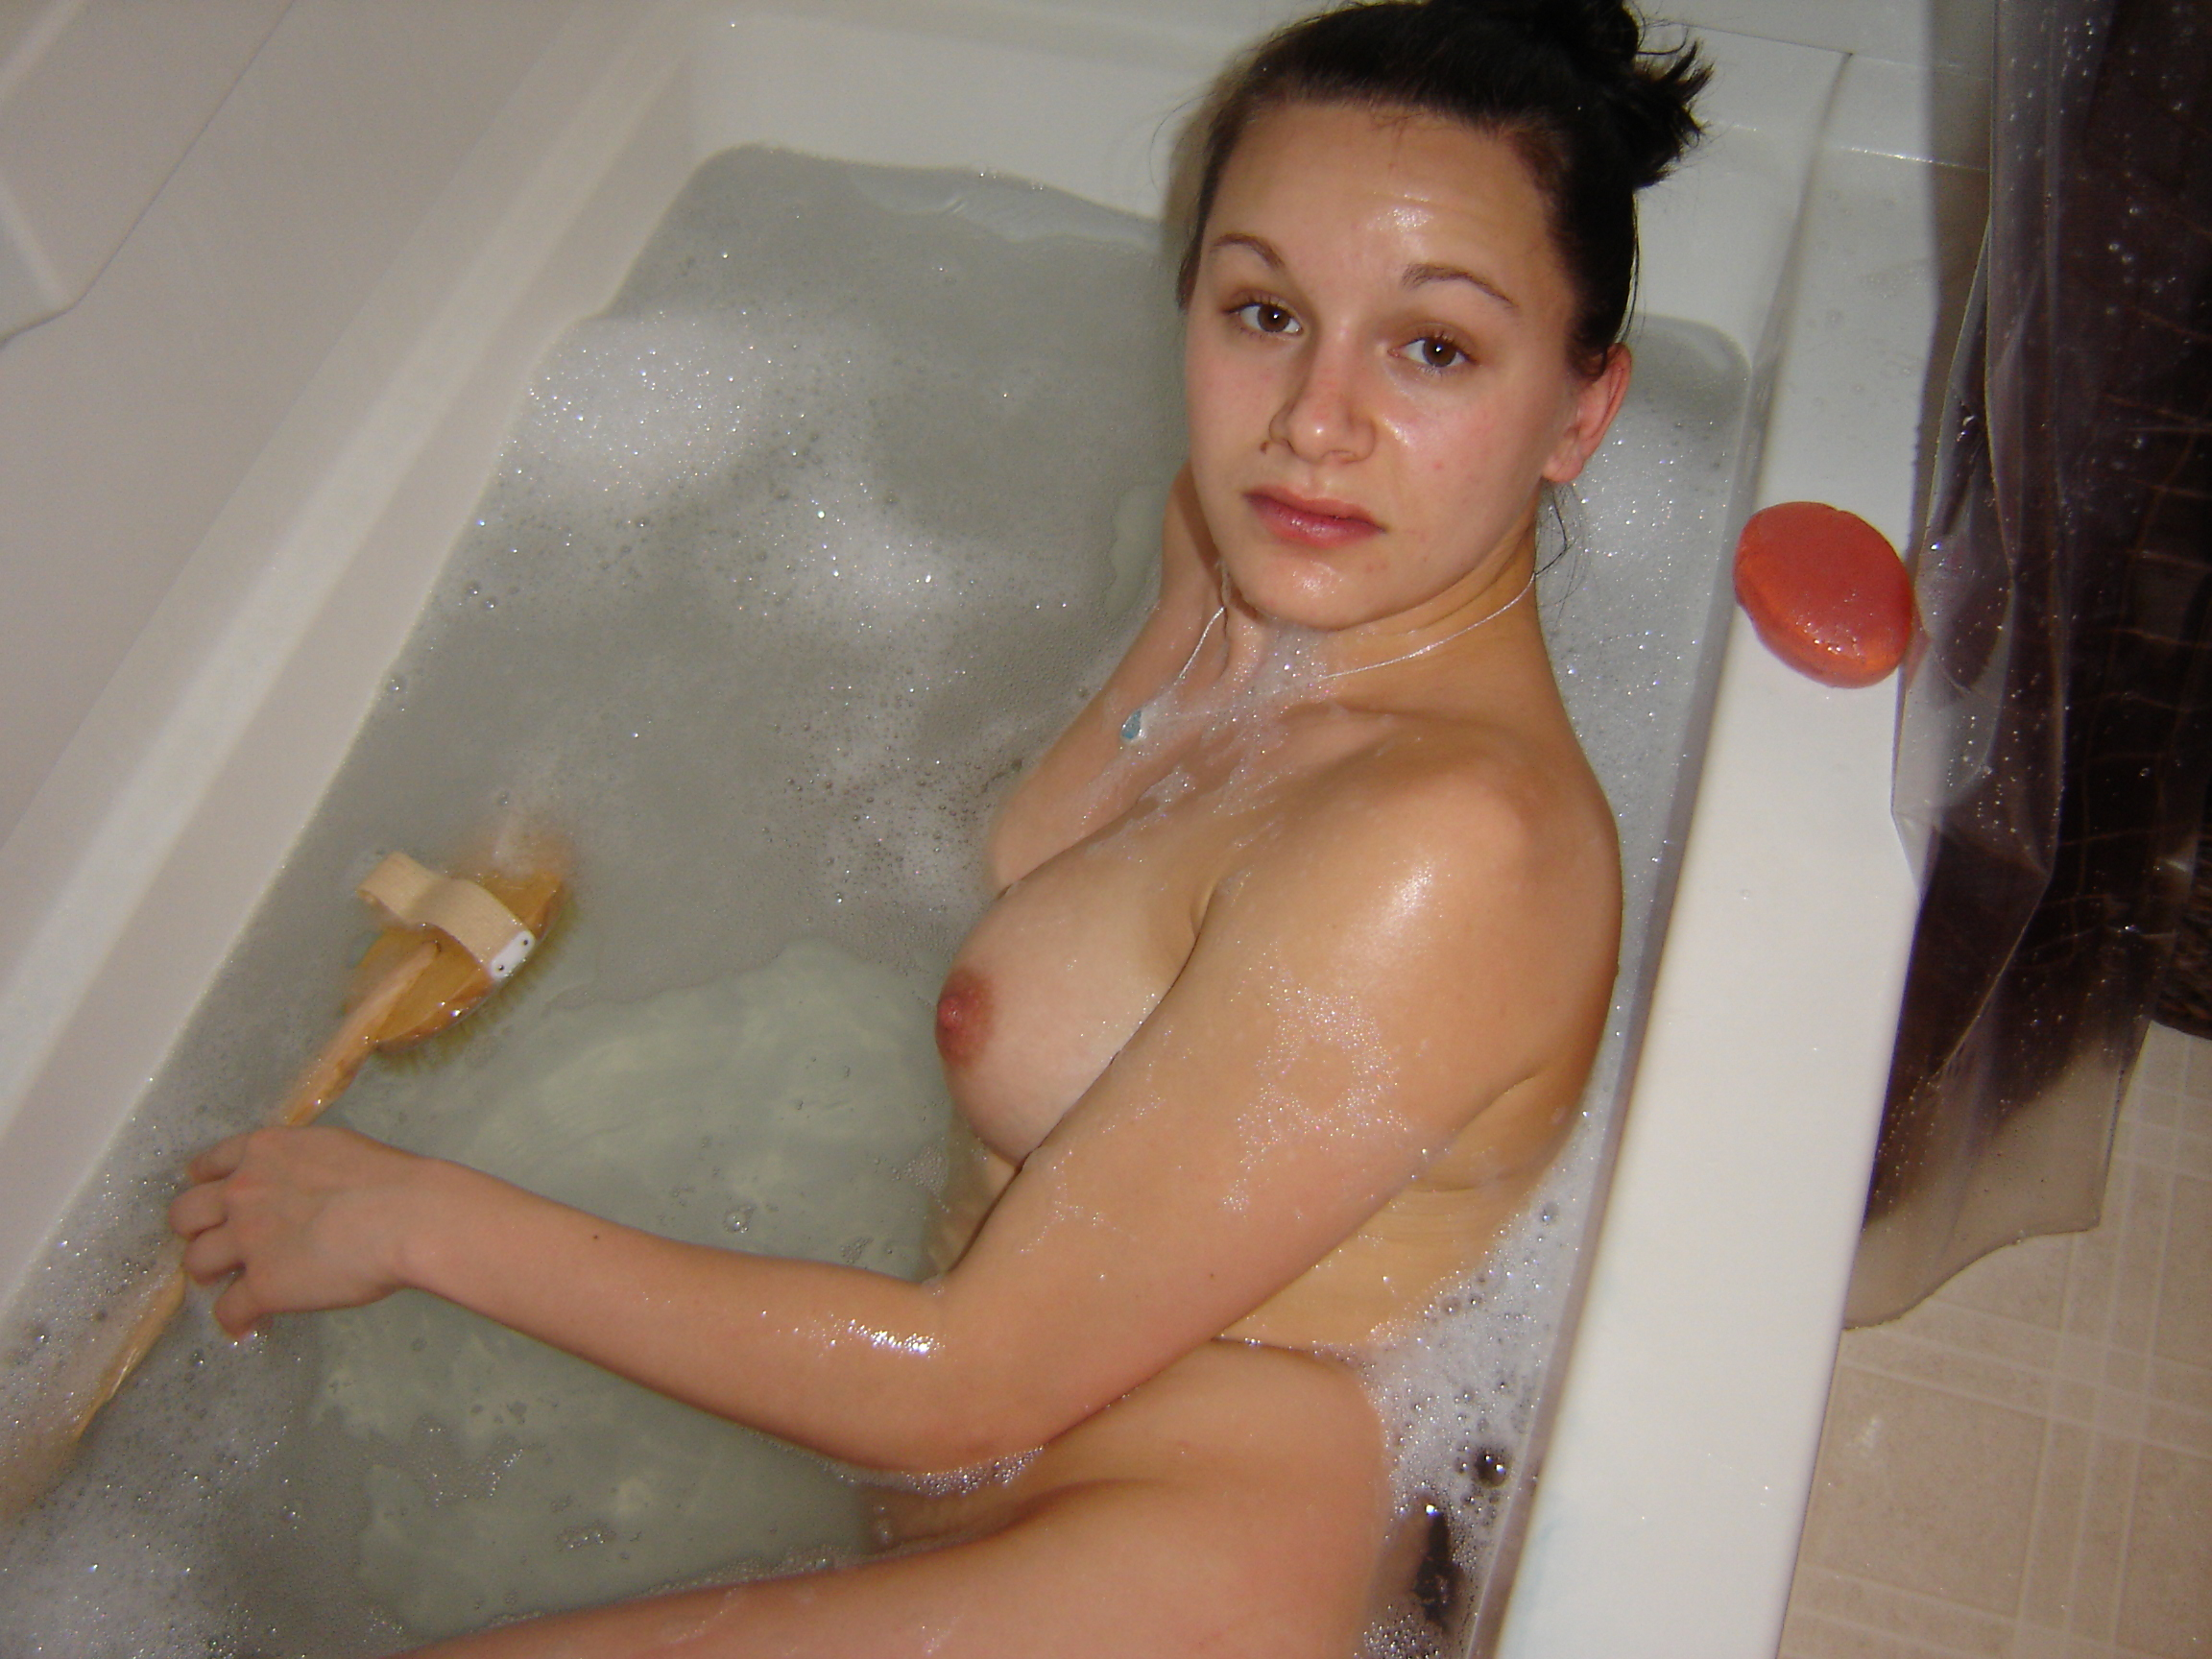 In_the_tub13.JPG